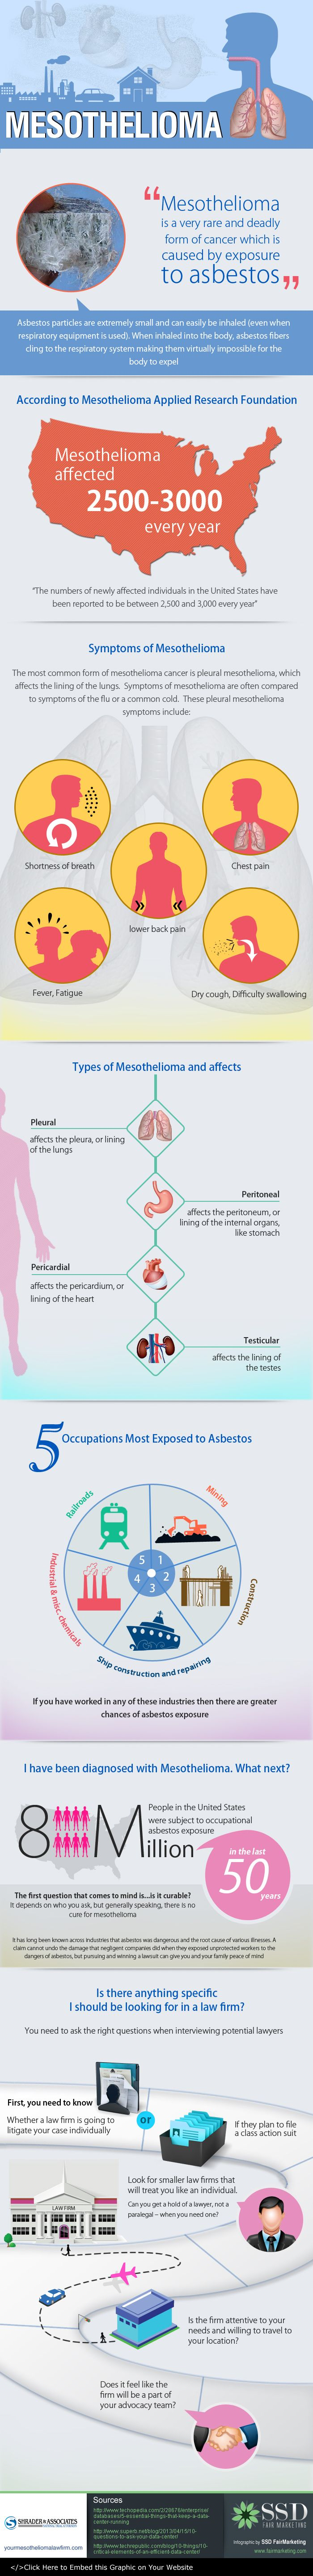 Stages of Mesothelioma #infographic #Health #Mesothelioma